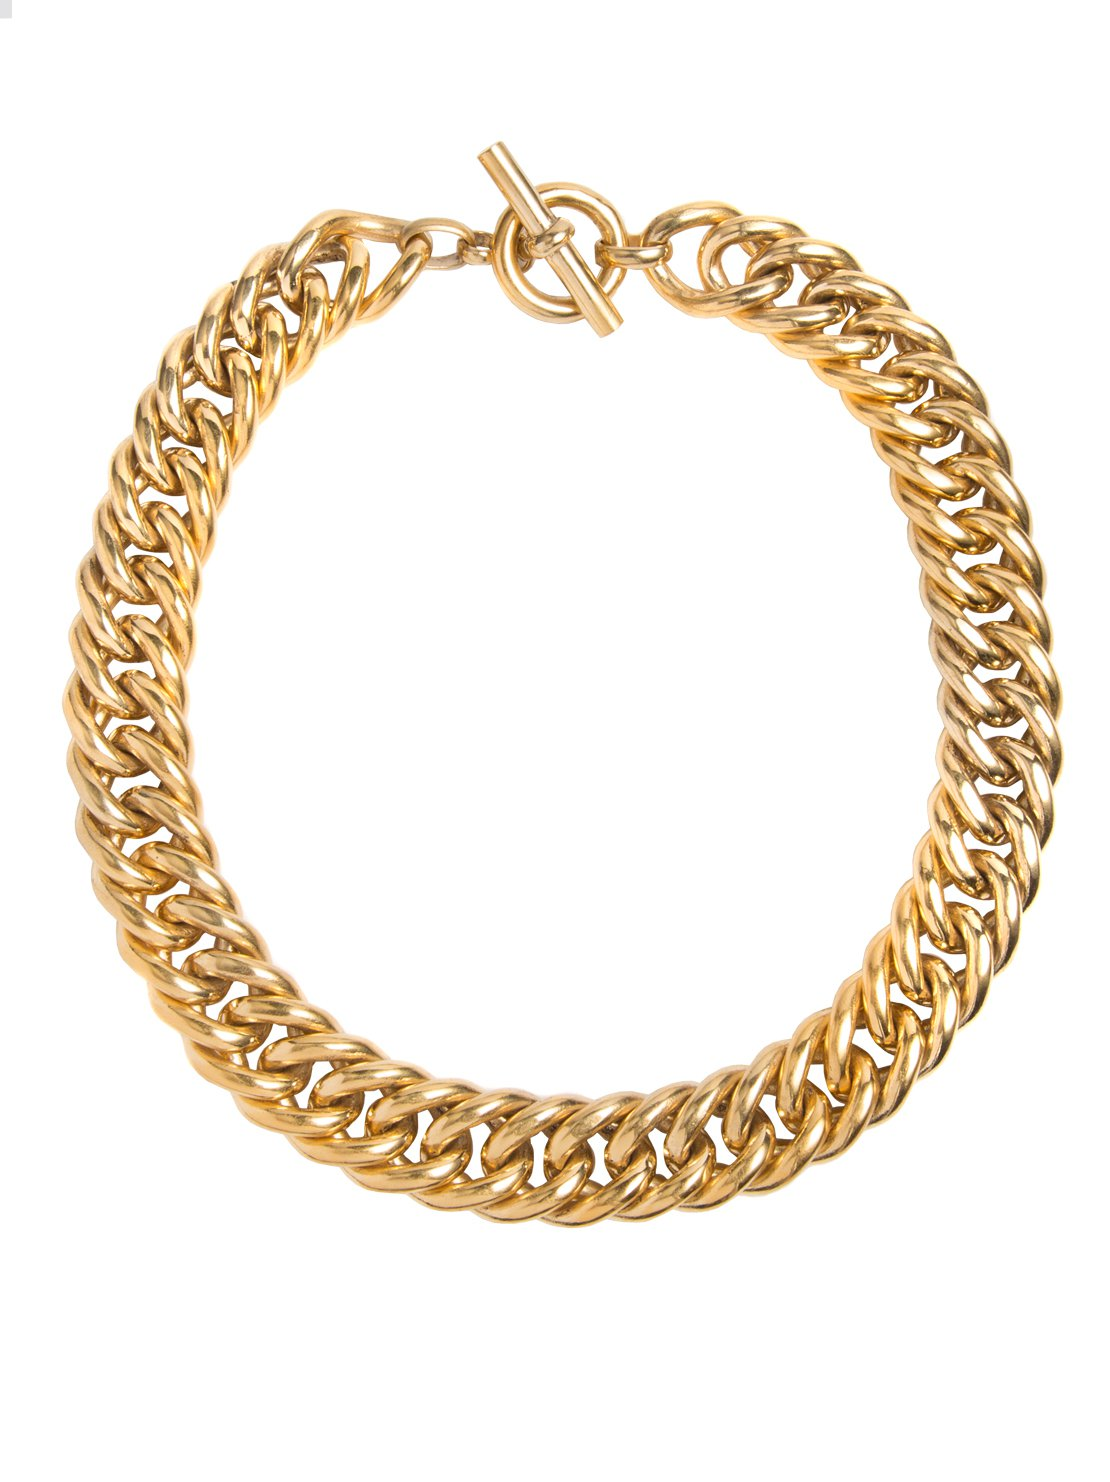 Large Gold Curb Chain Necklace - Tilly Sveaas Jewellery